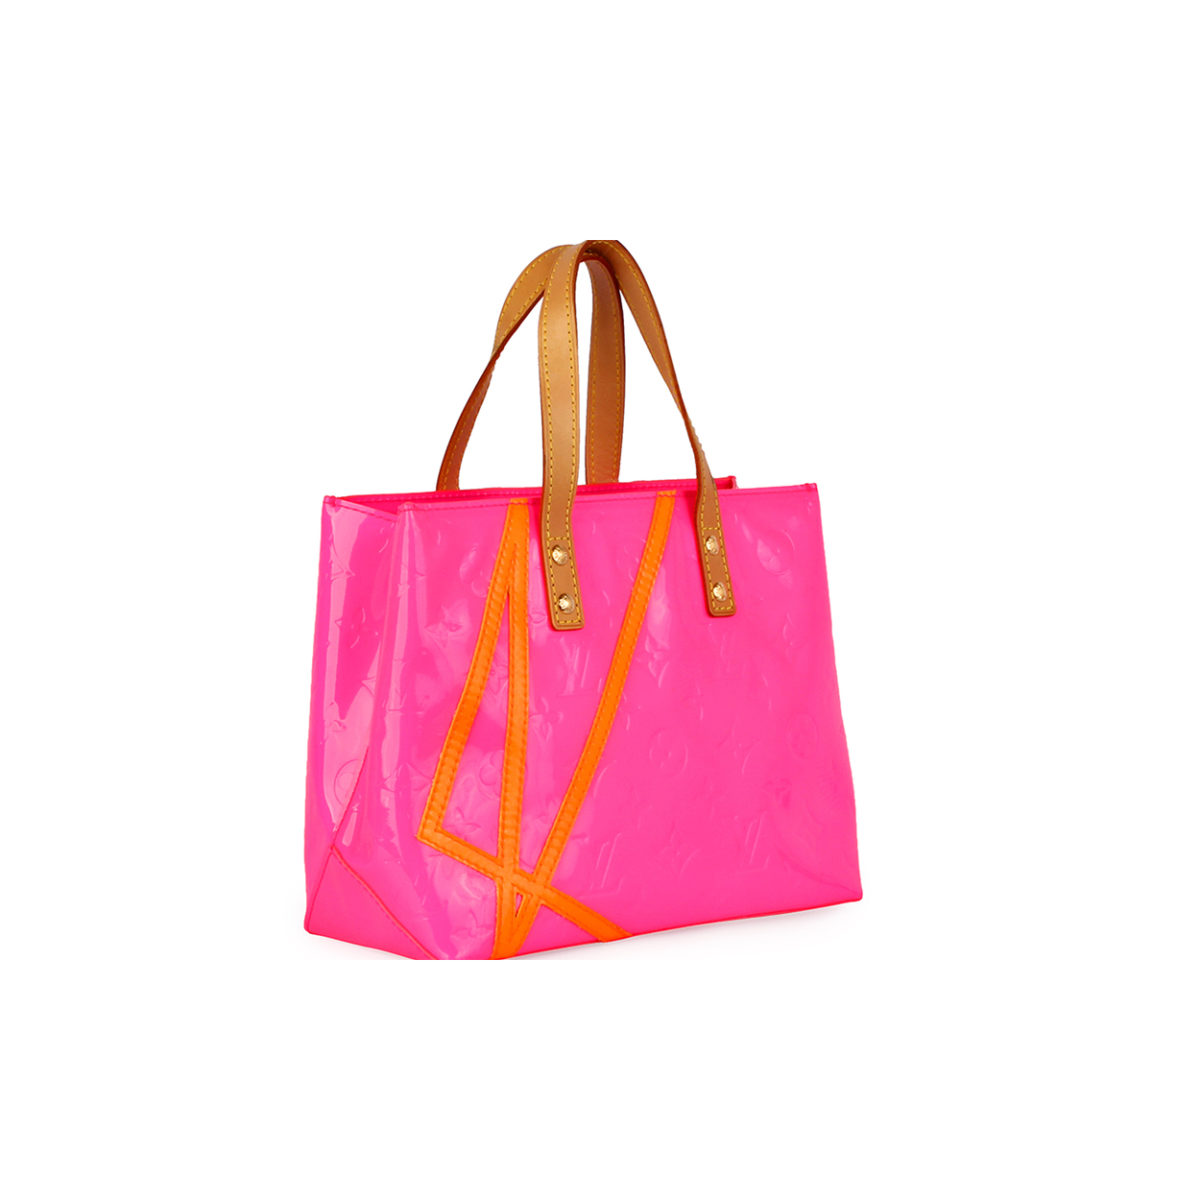 450bfd877f0c LOUIS VUITTON Vernis Reade PM Robert Wilson Bag Pink - Limited ...